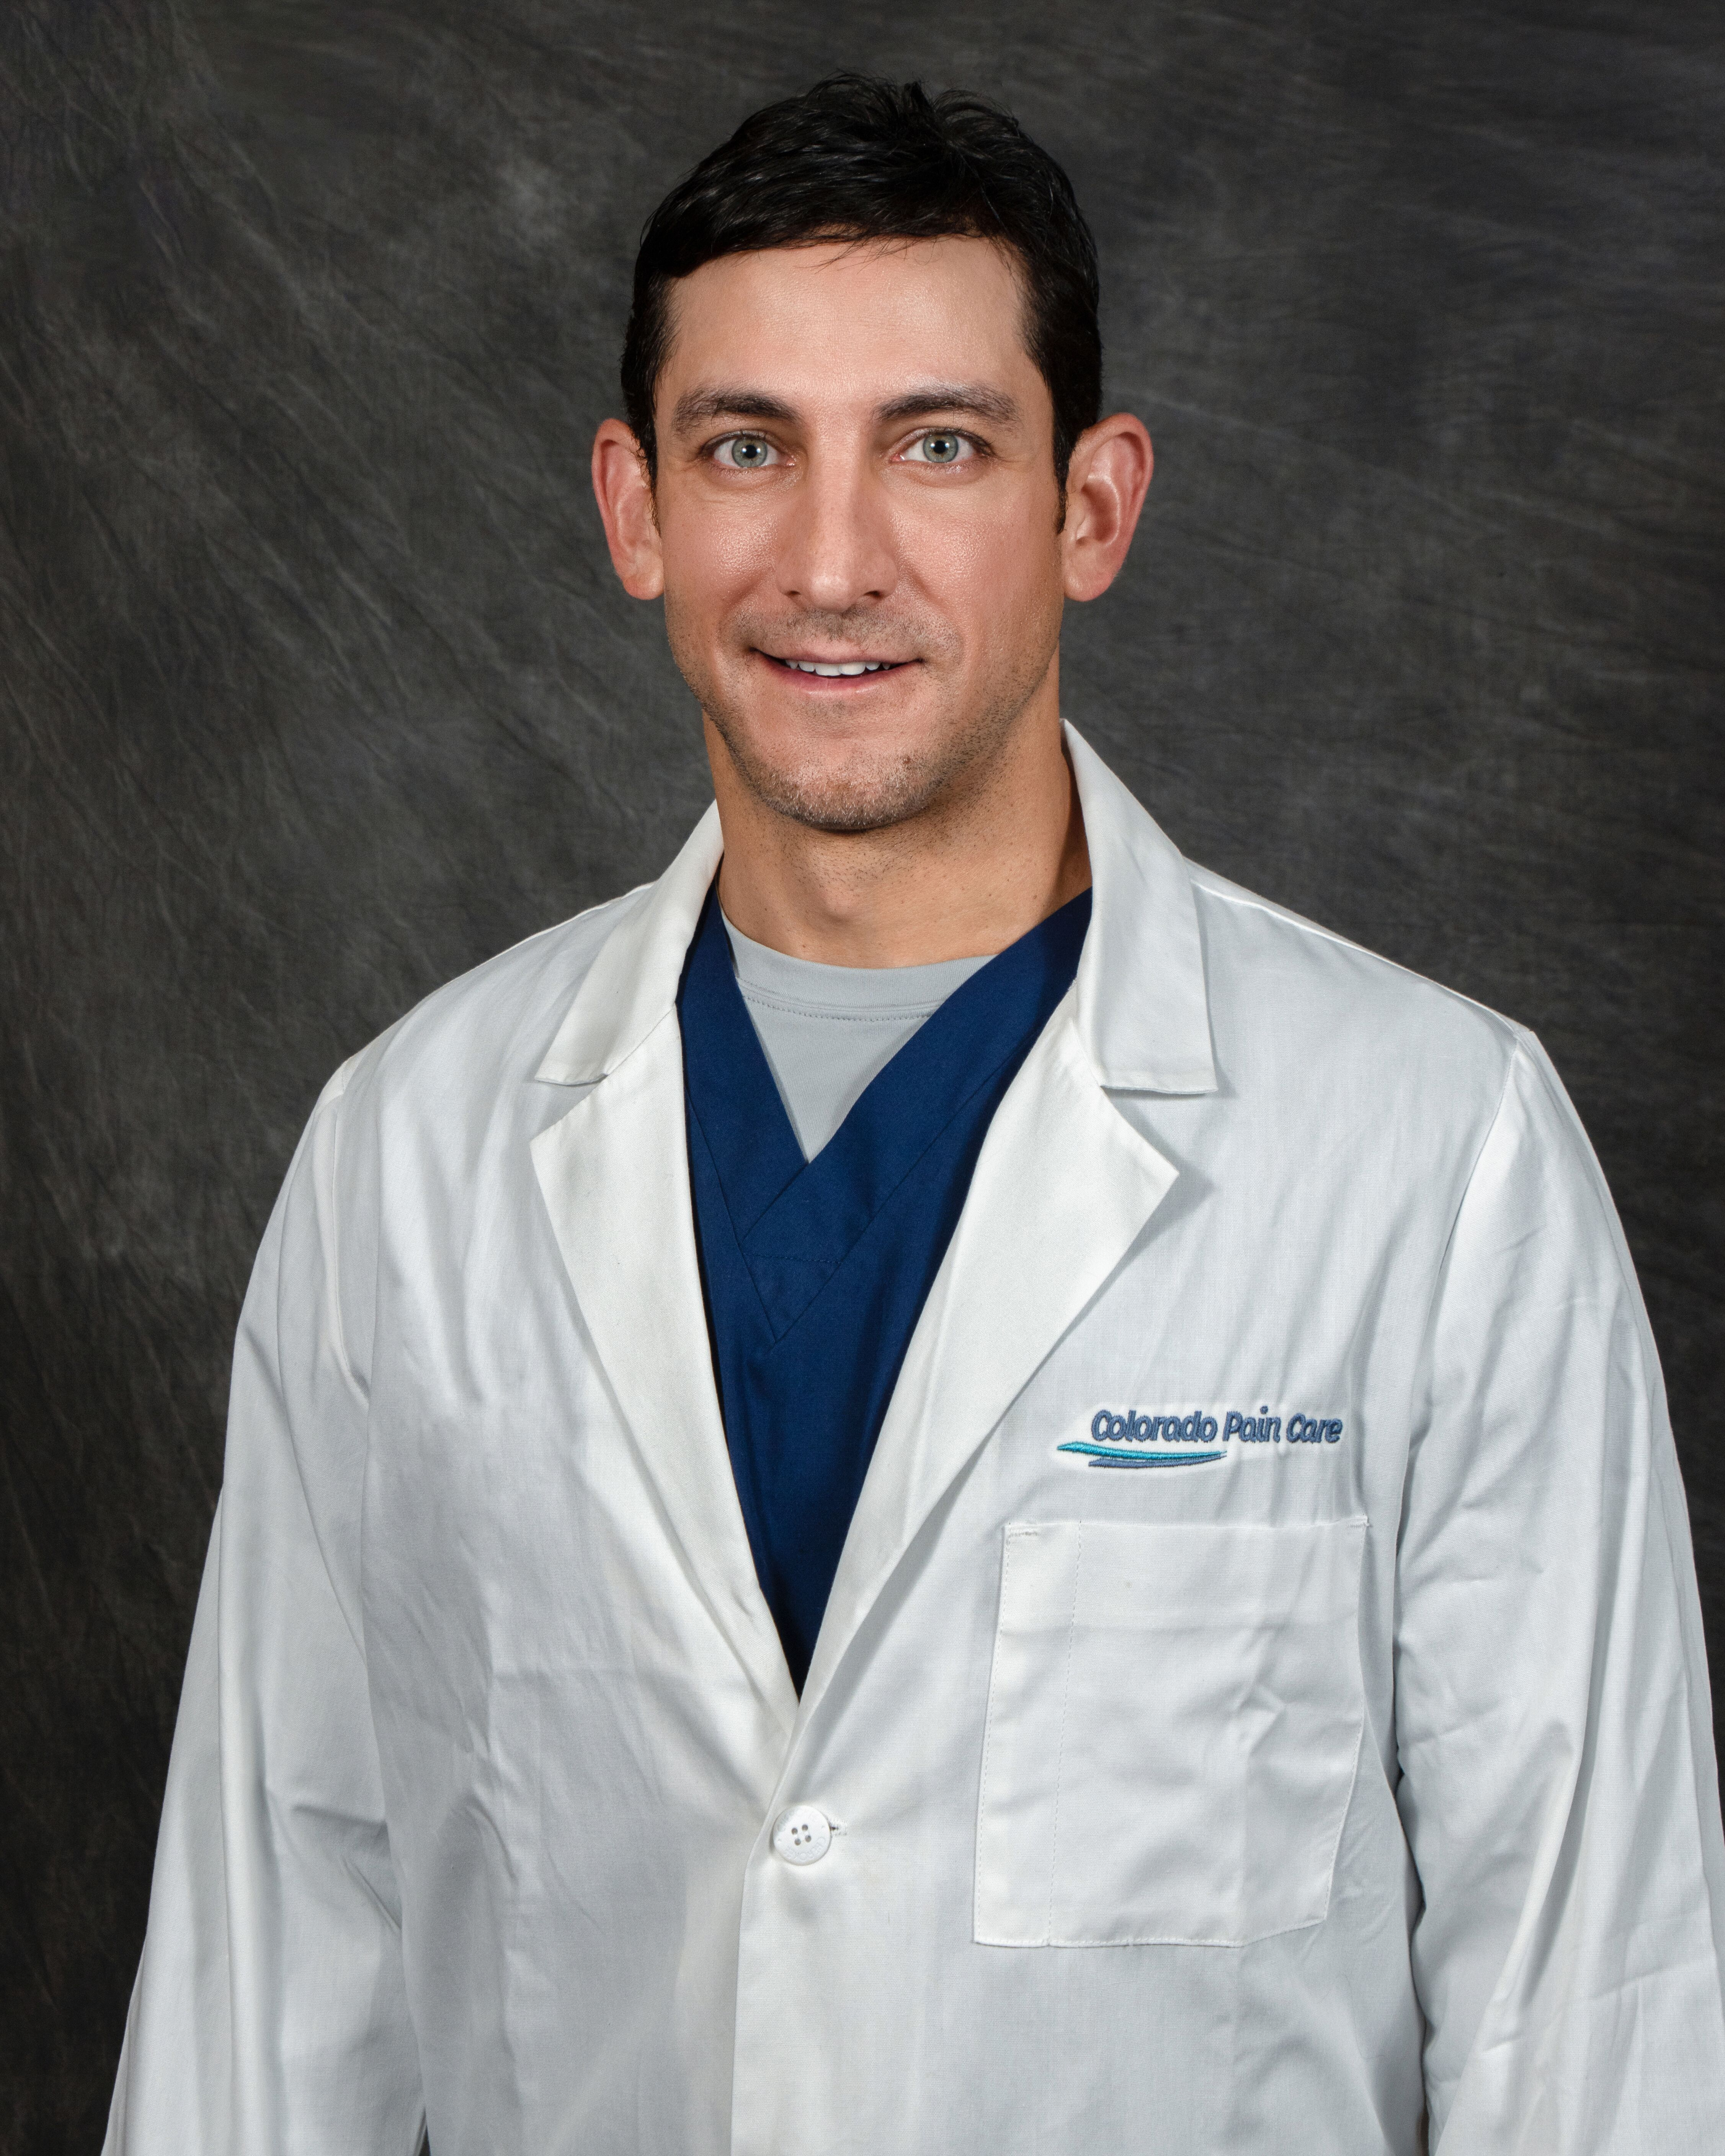 Dr. Moghim Participates in Clinical Trial for Knee Pain